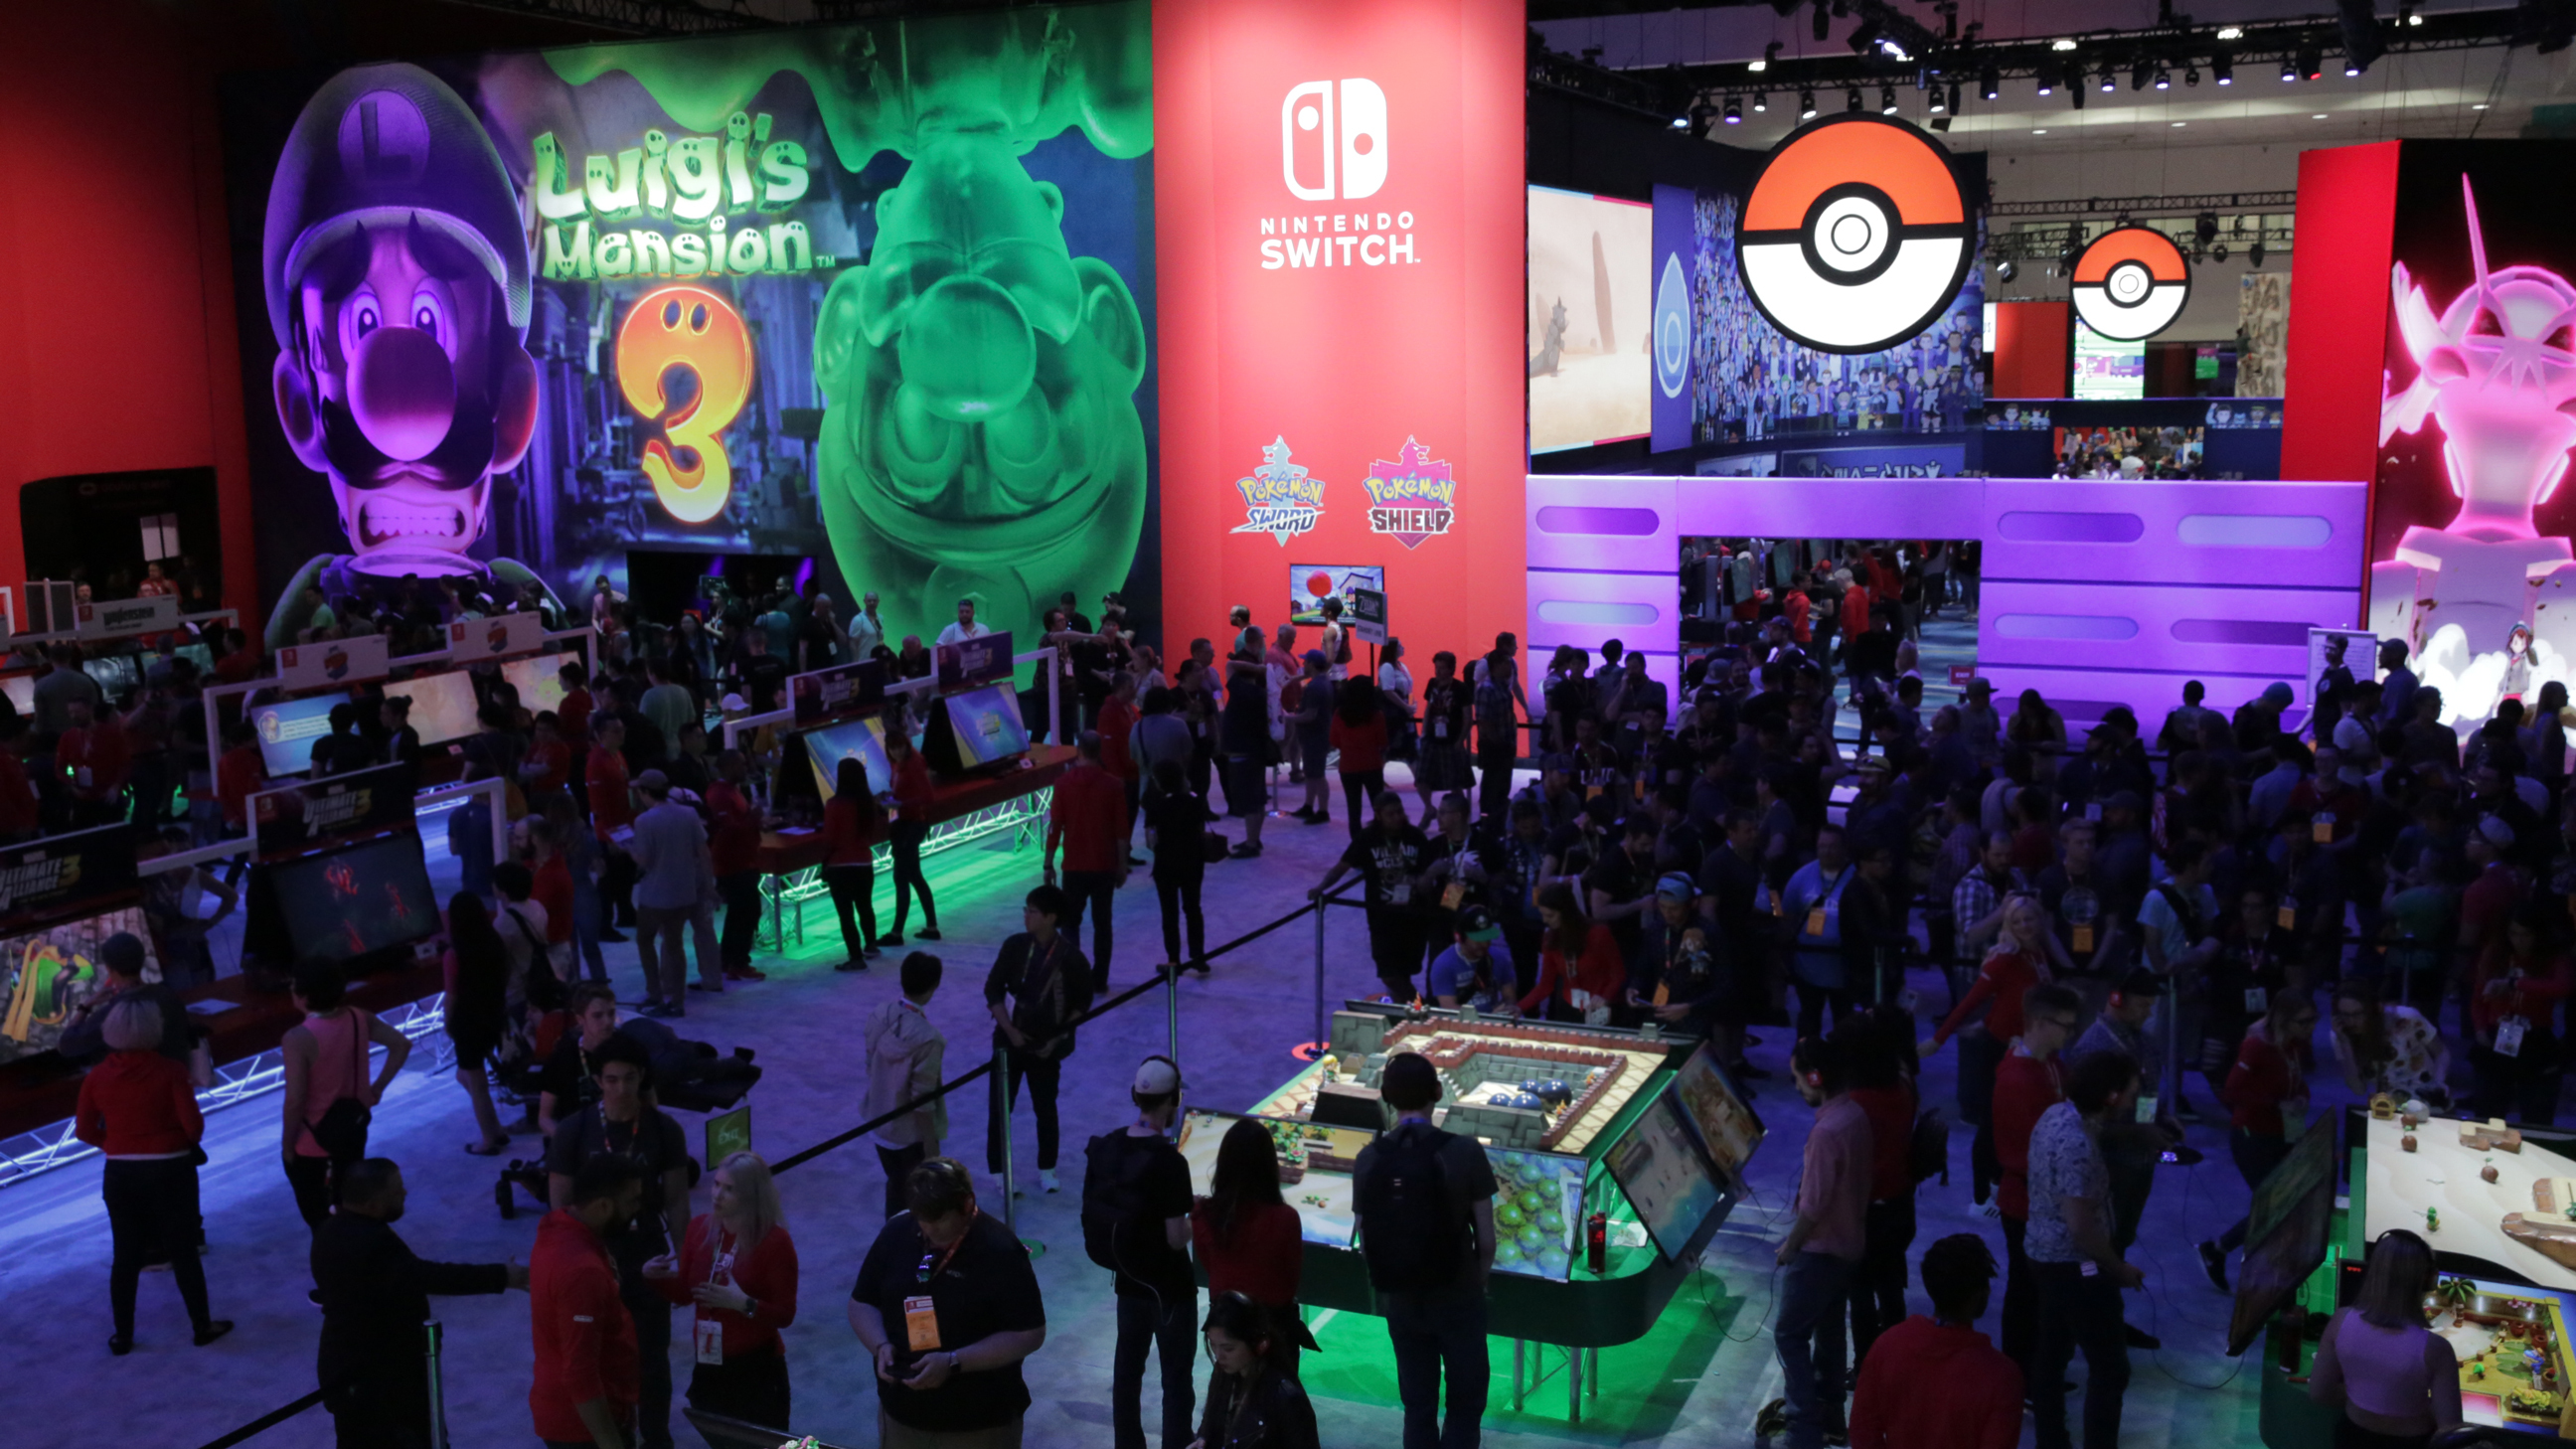 Nintendo News Nintendo Wraps Up A Day Of Video Game Fun At E3 Business Wire